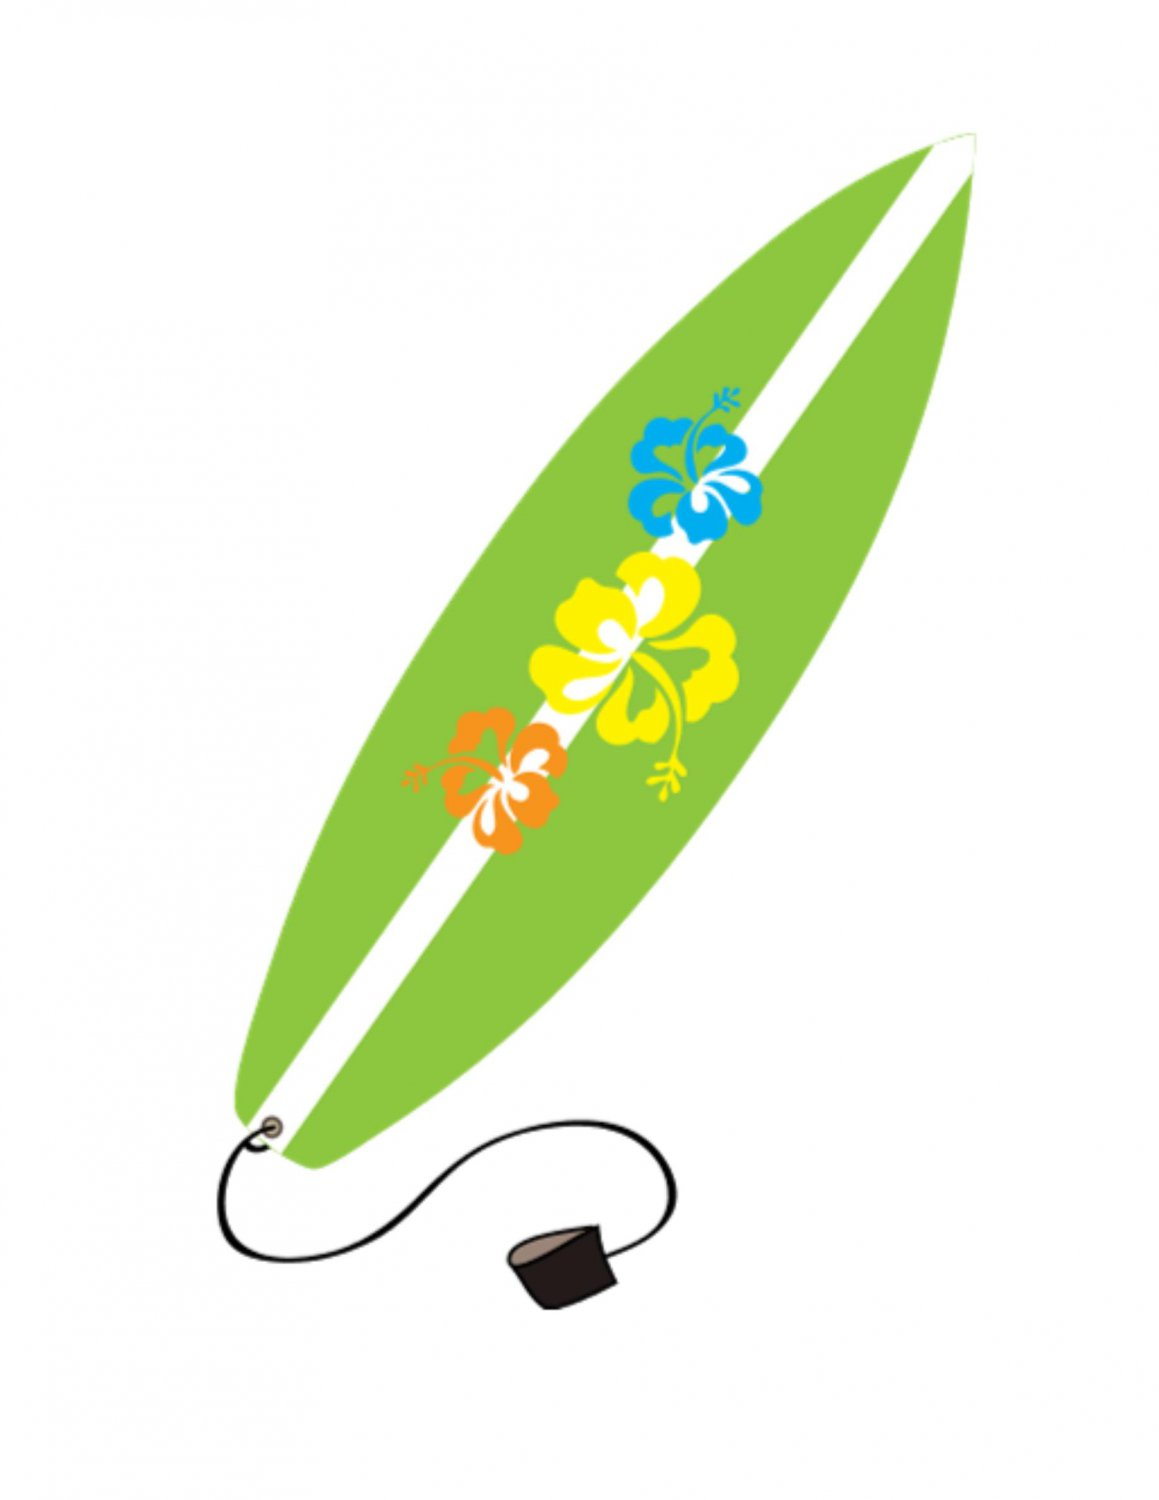 Surfboard others 1 clipart image icons free graphics clipart